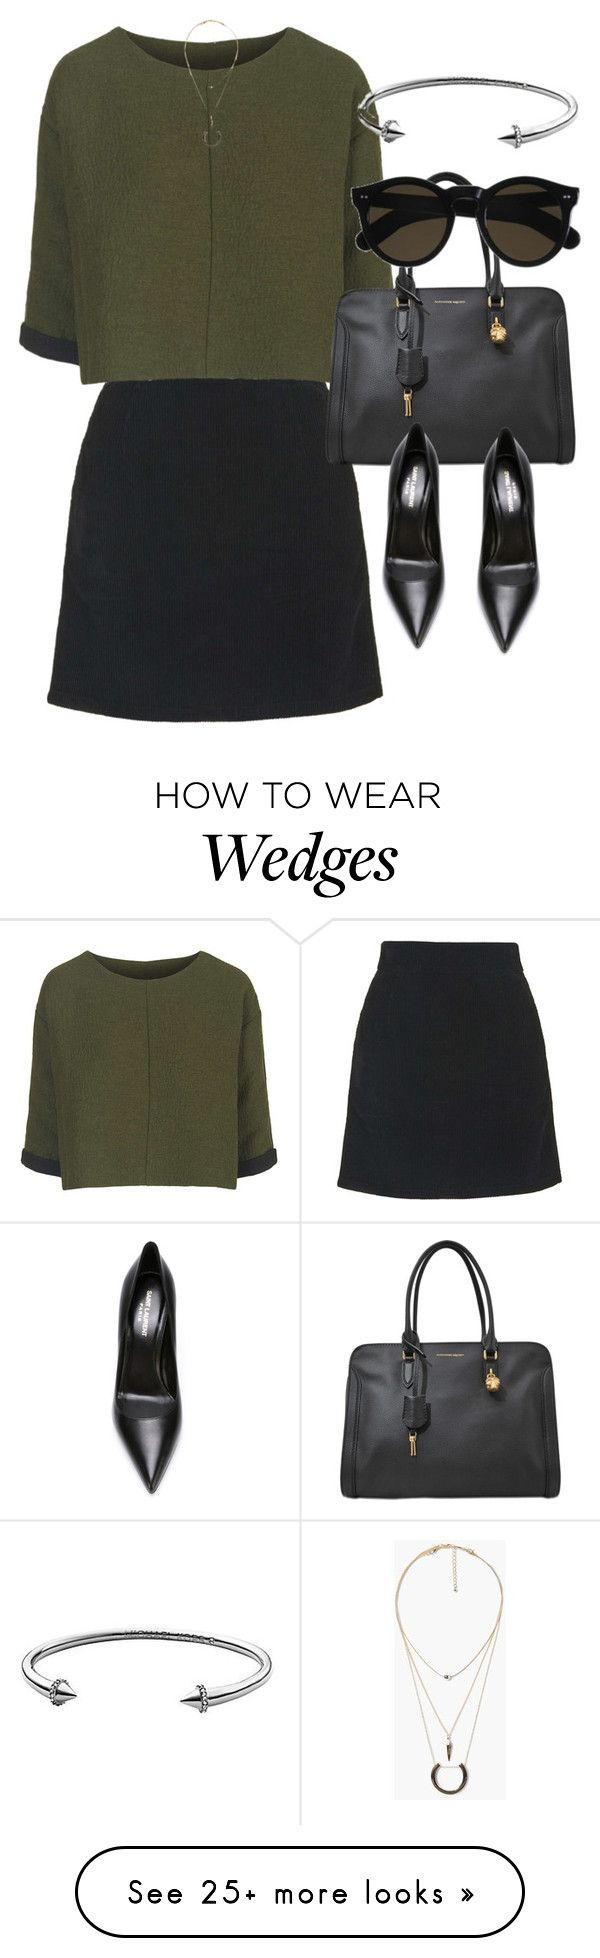 """Untitled #3337"" by glitter-the-world on Polyvore featuring Topshop, MANGO, Alexander McQueen, Yves Saint Laurent, Beau Coops, Michael Kors, women's clothing, women's fashion, women and female"